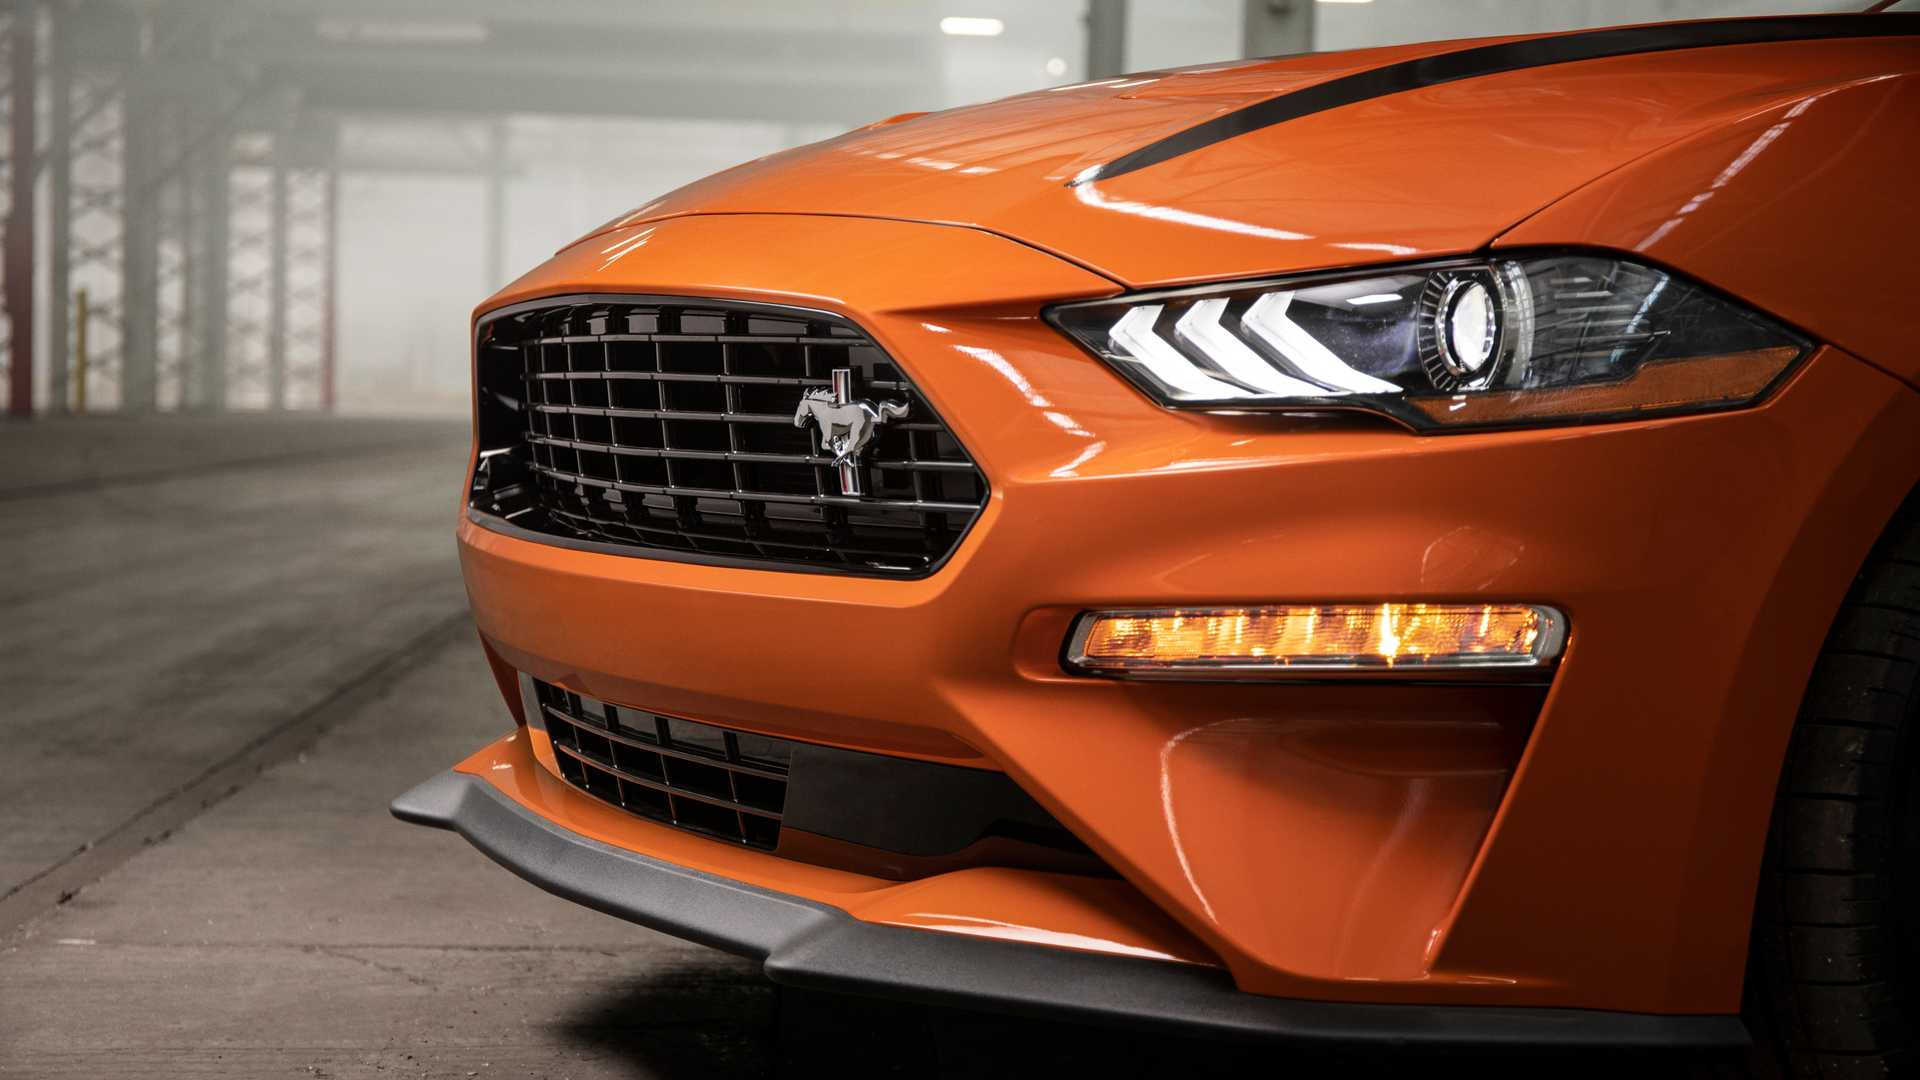 2020 Ford Mustang 2.3L High Performance Package Headlight Wallpapers (12)